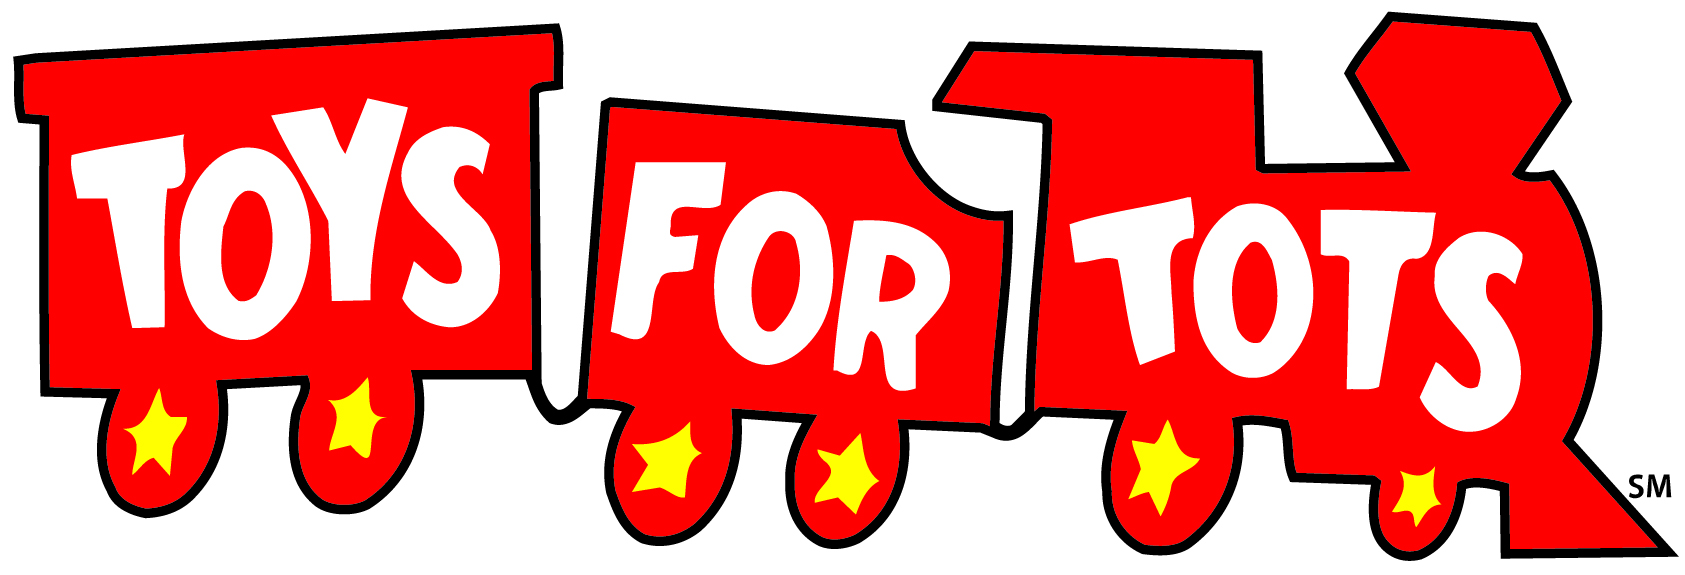 Marines Toys For Tots Logo 2013 : Toys for tots geek alabama